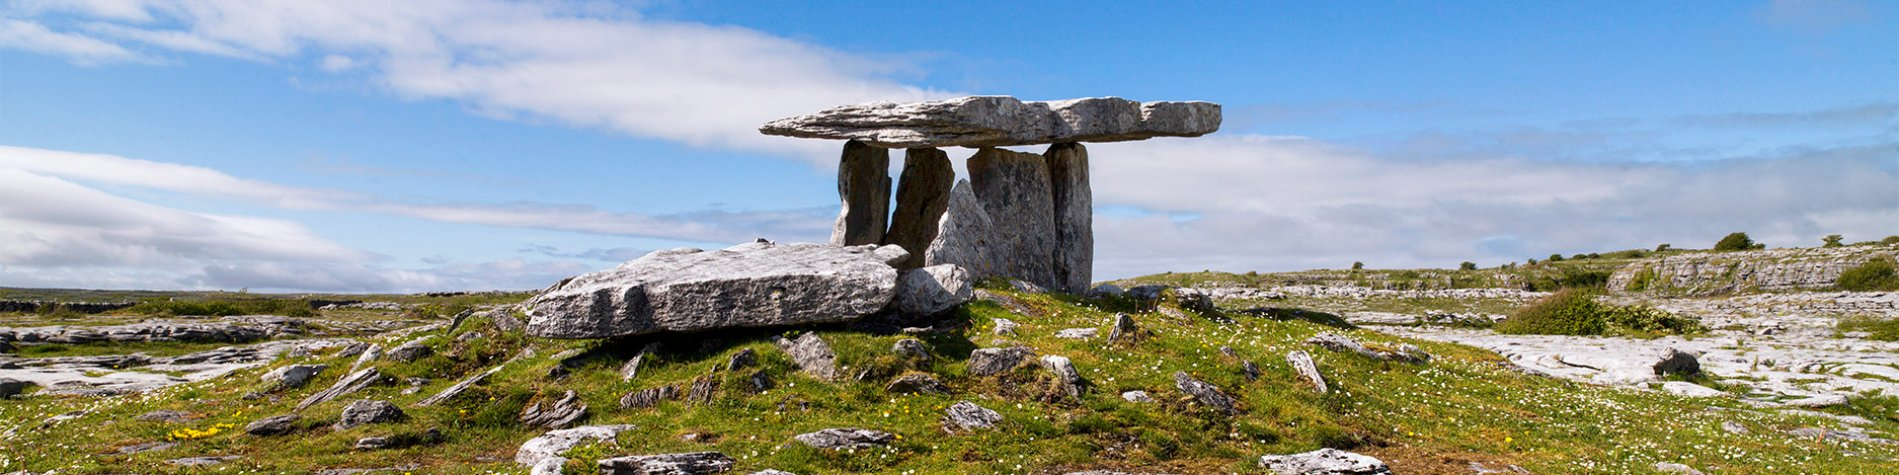 Poulnabrone Dolmen Overlooking the Burren